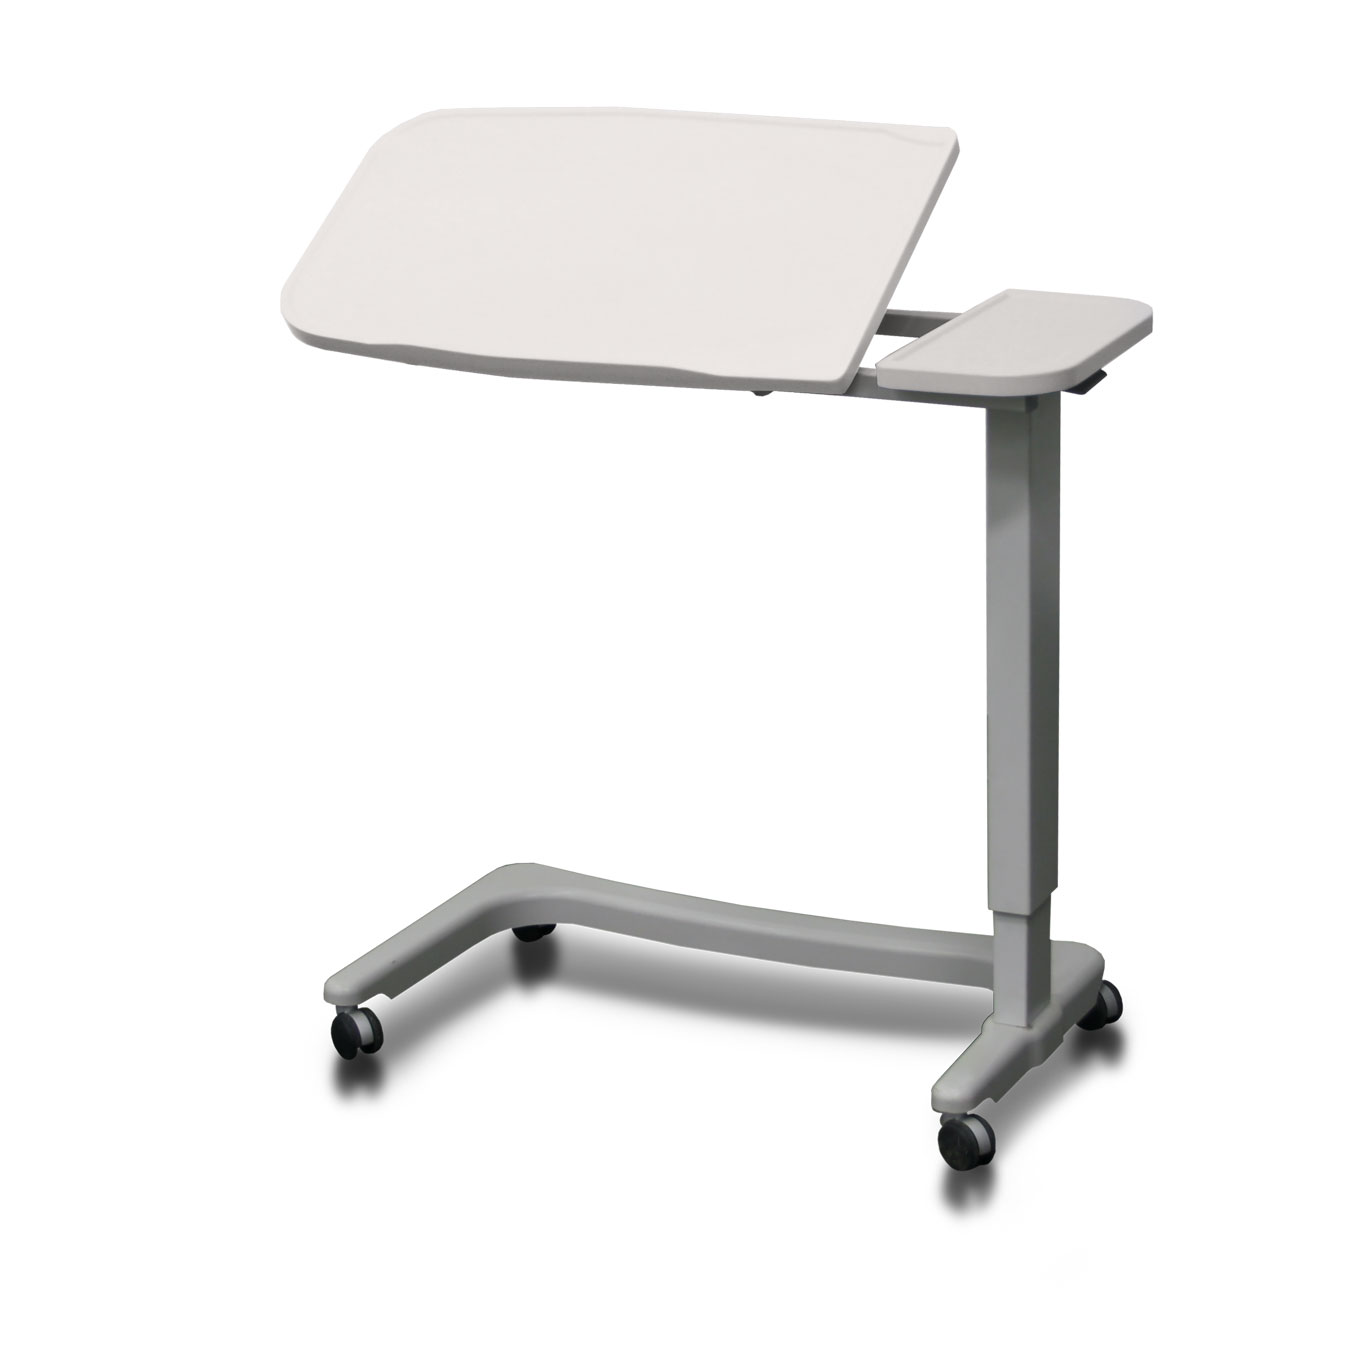 AXST210-AW_Overbed-Table-Split-Top_Ash-White_1